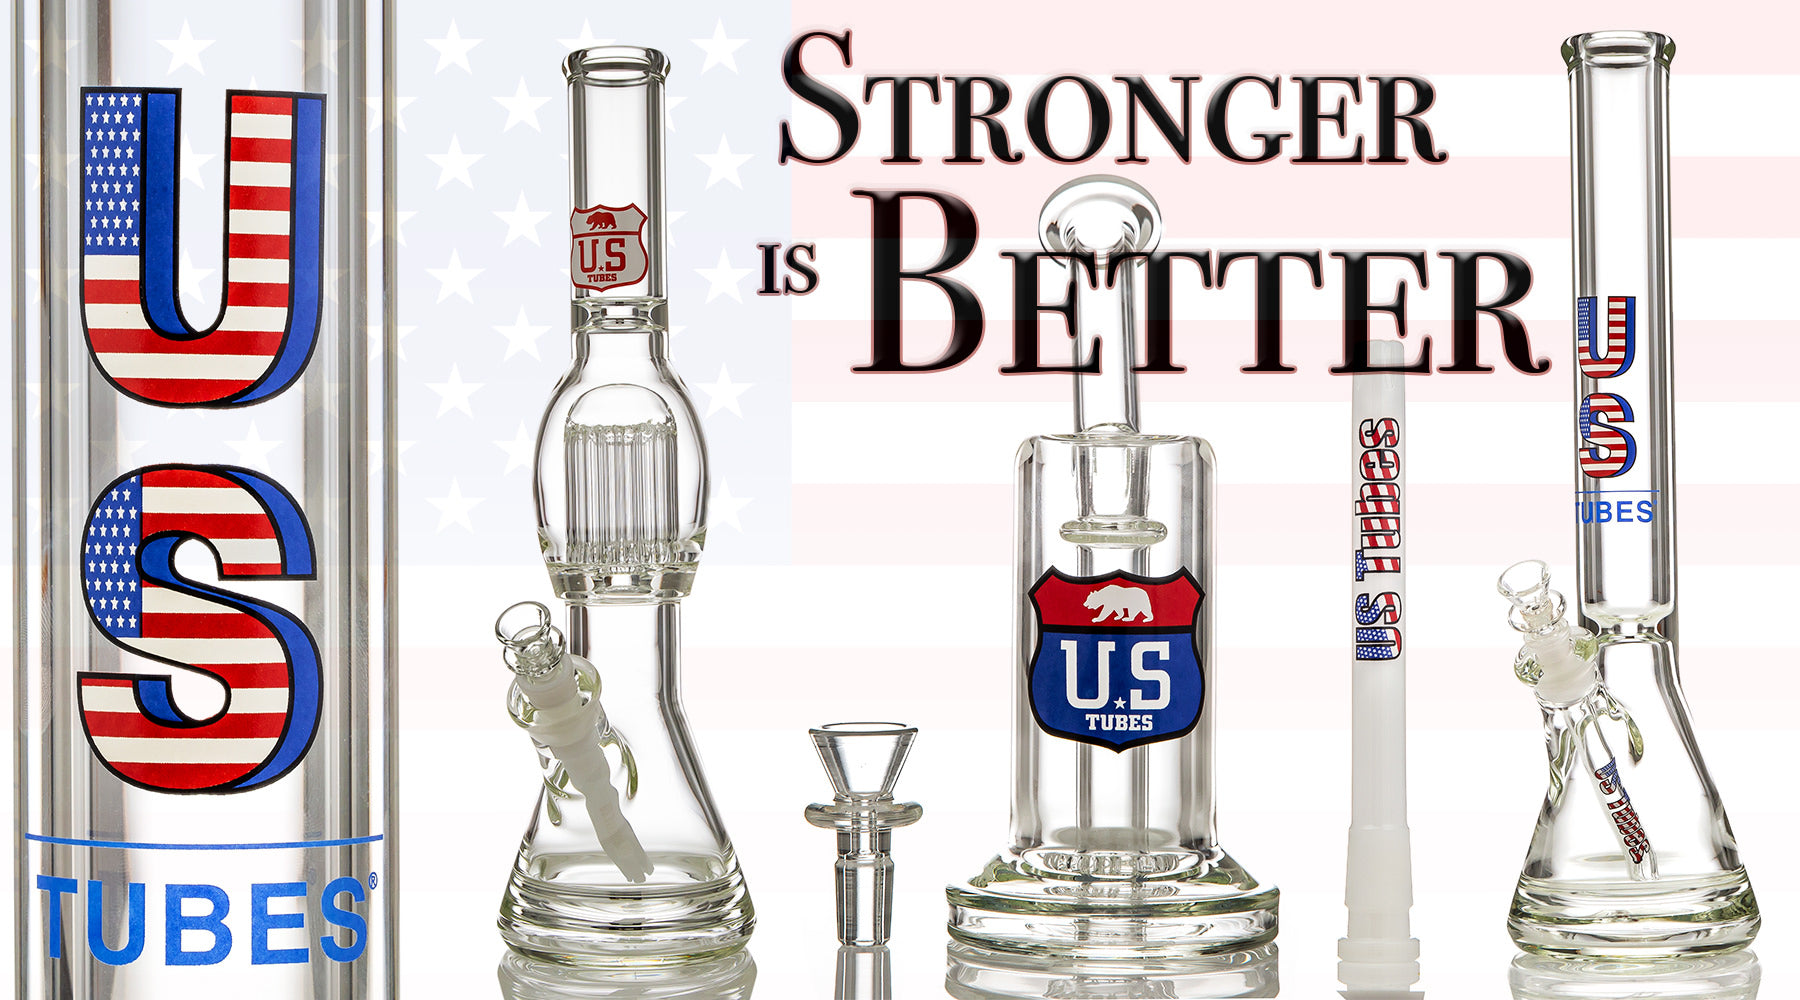 US TUBES Banner Image, Stronger is Better